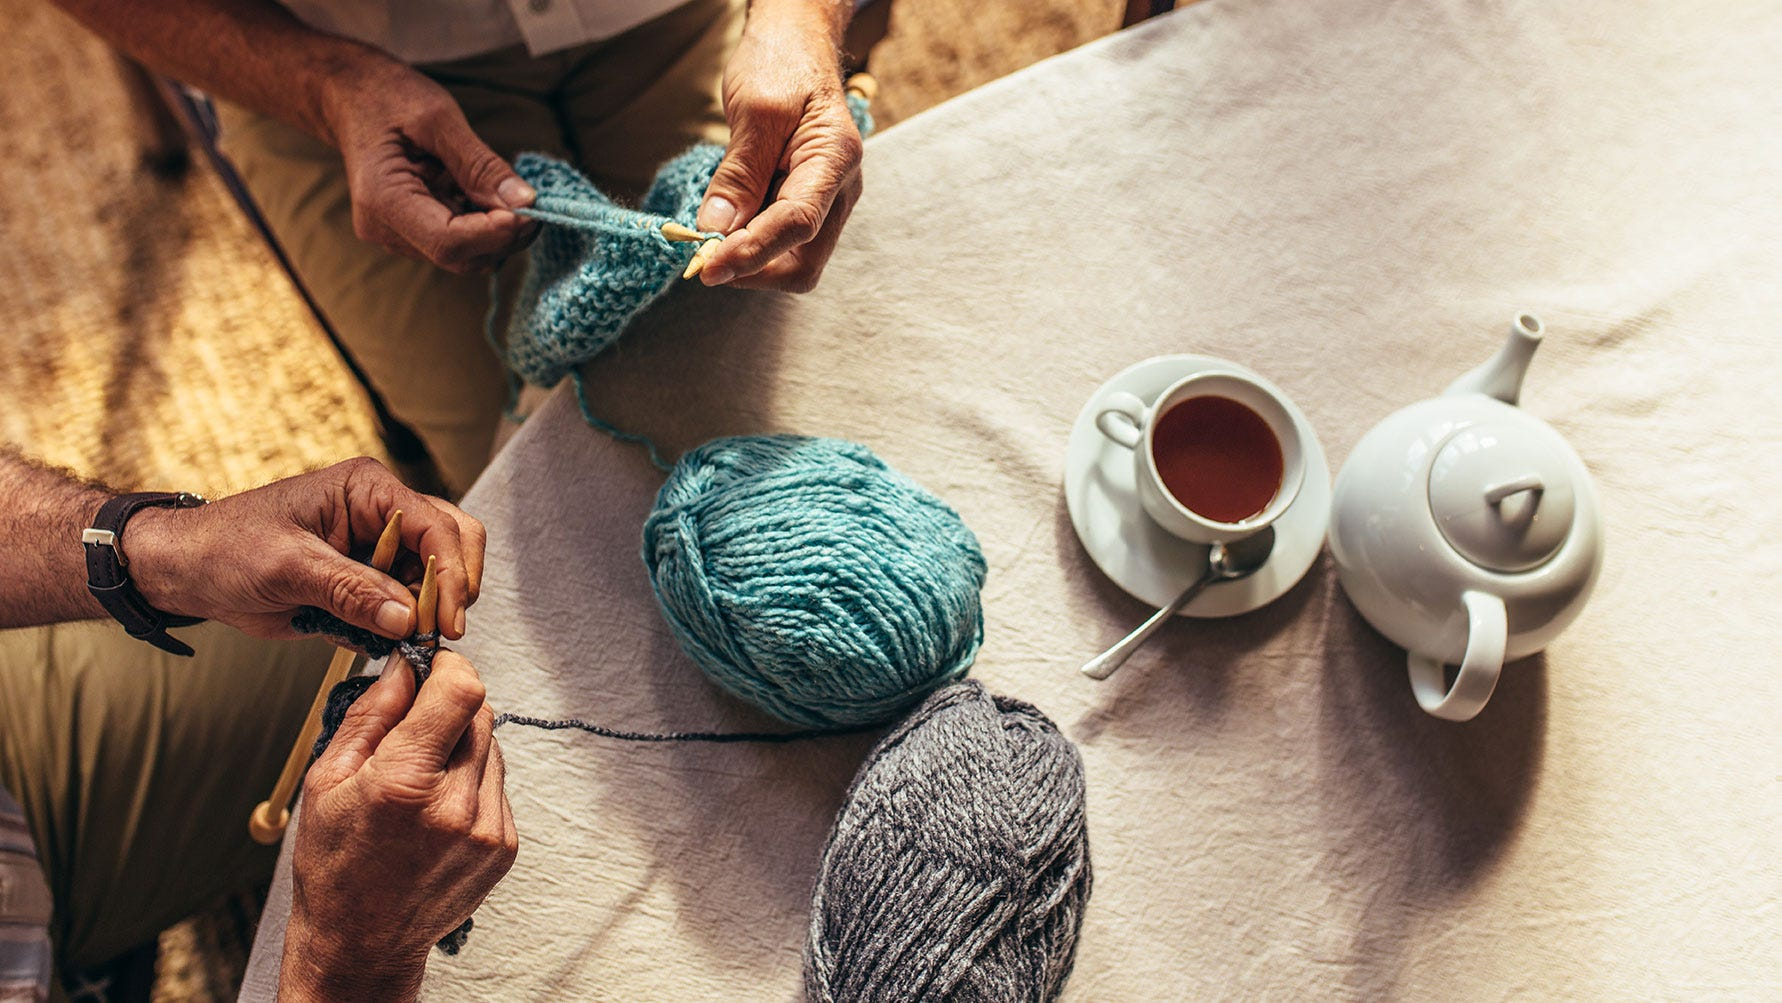 Senior people knitting